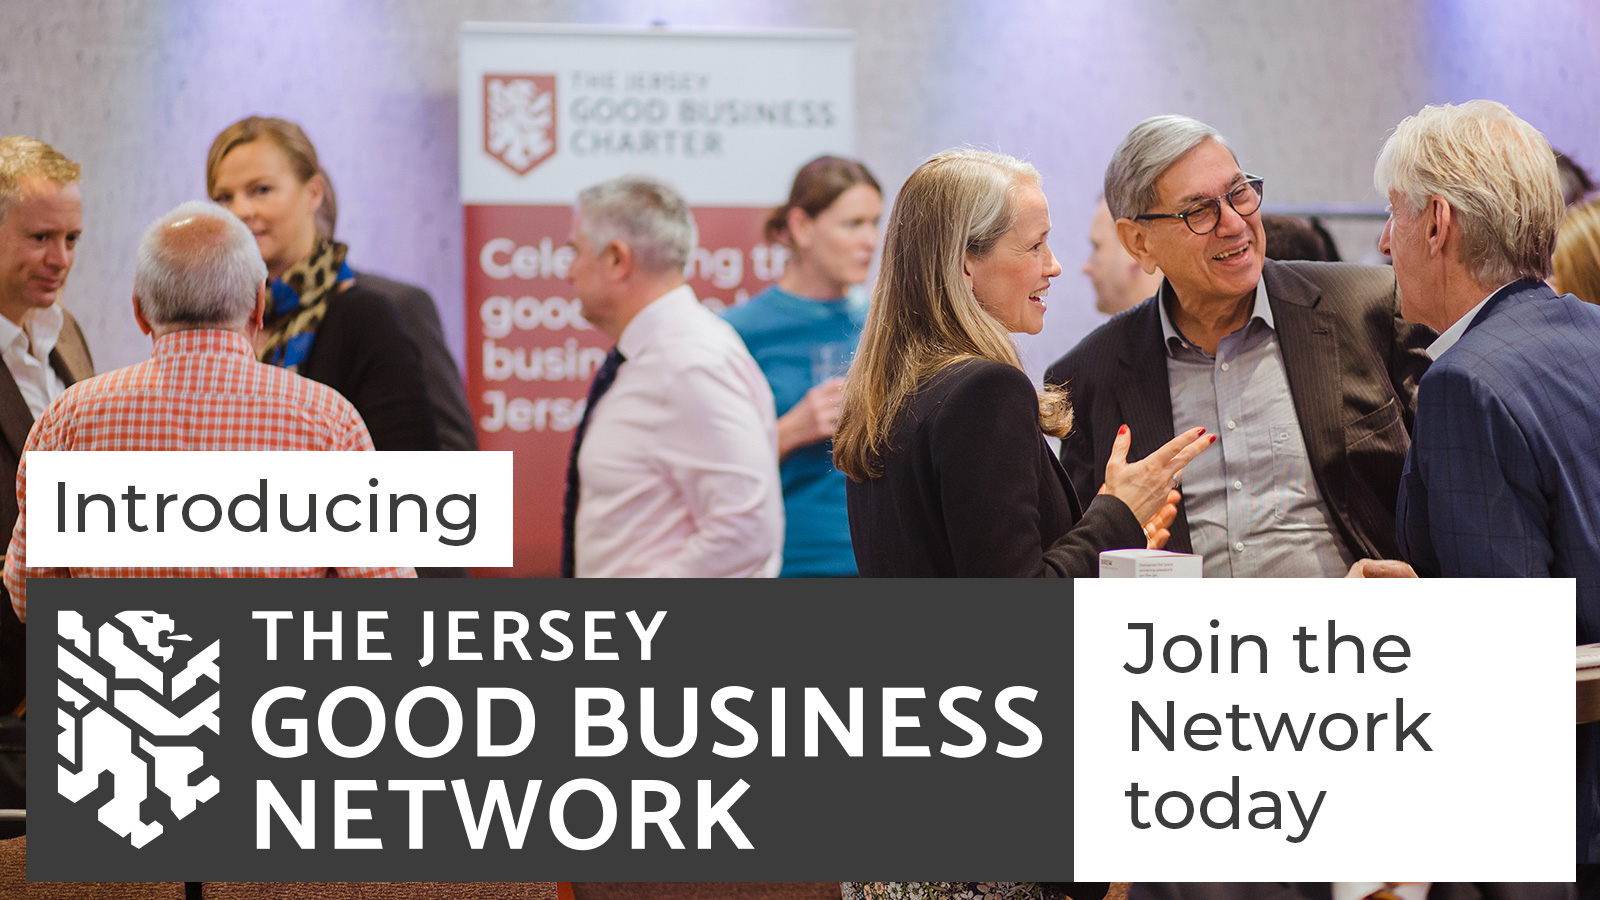 Introducing The Jersey Good Business Network